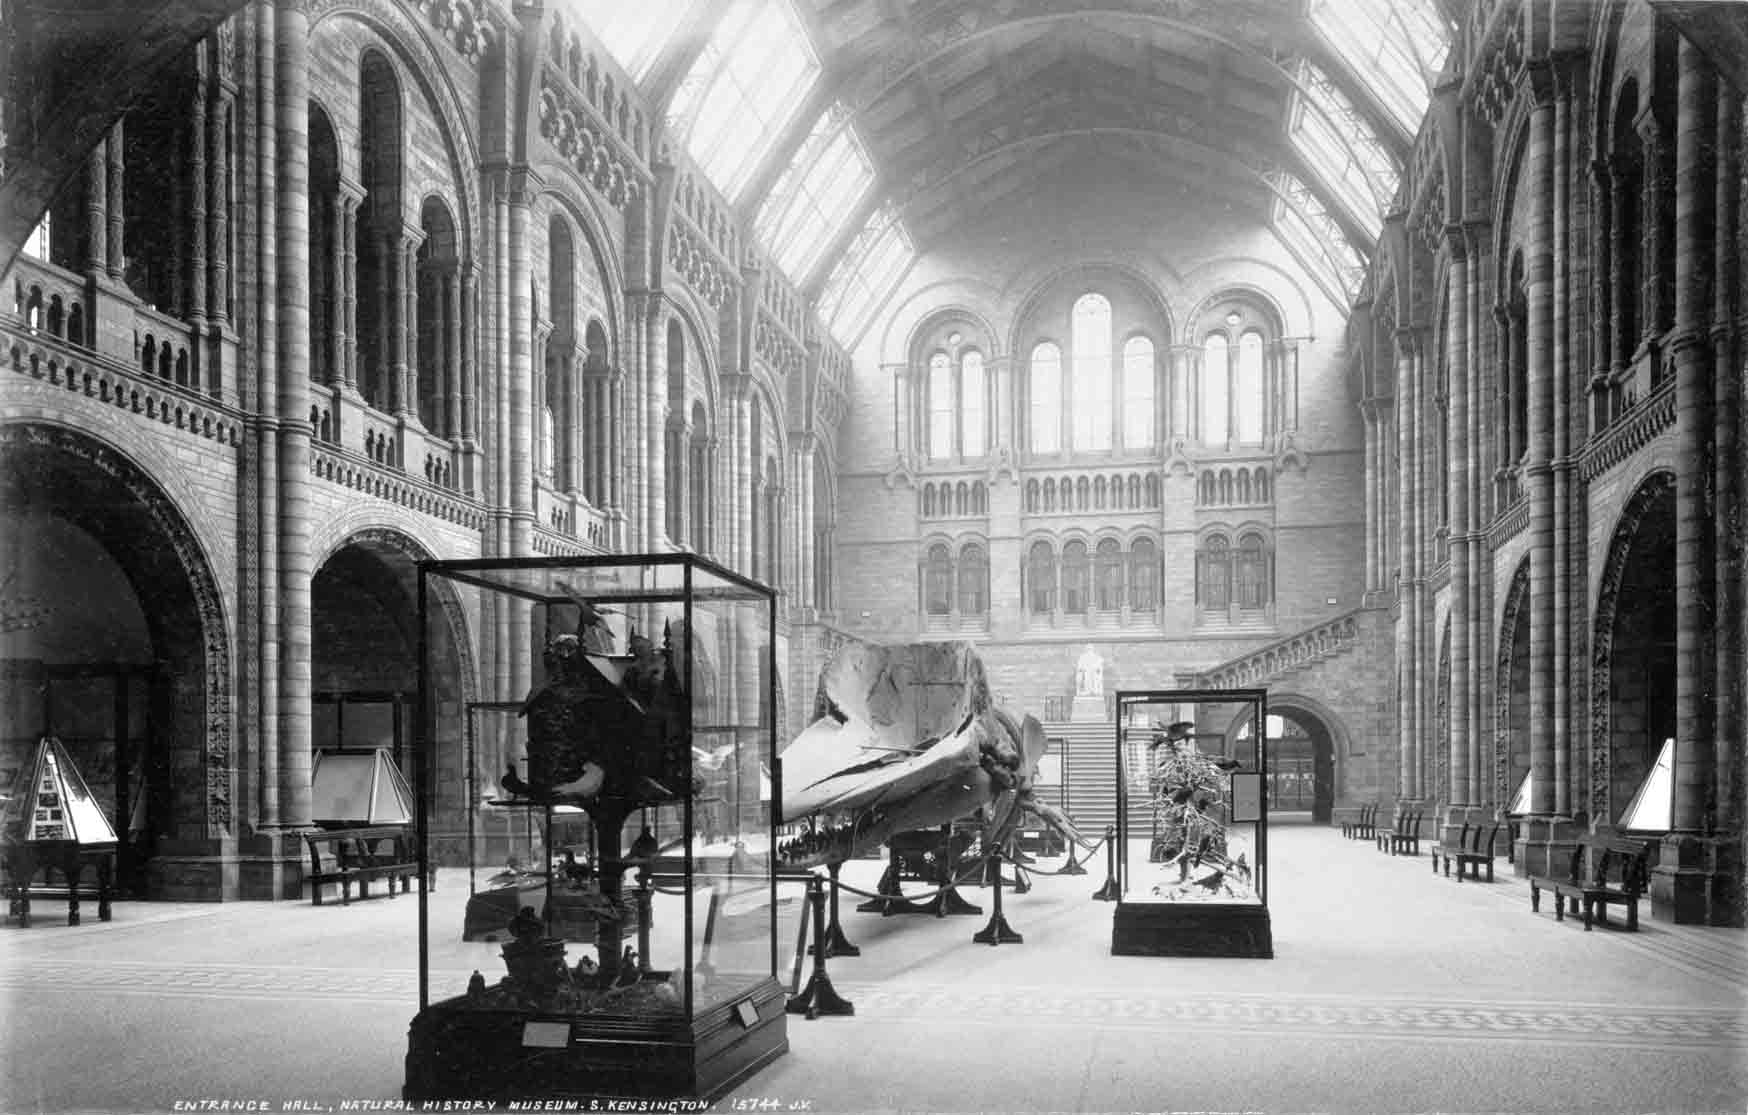 View of Central Hall, looking north, from July 1902. © The Trustees of the Natural History Museum, London